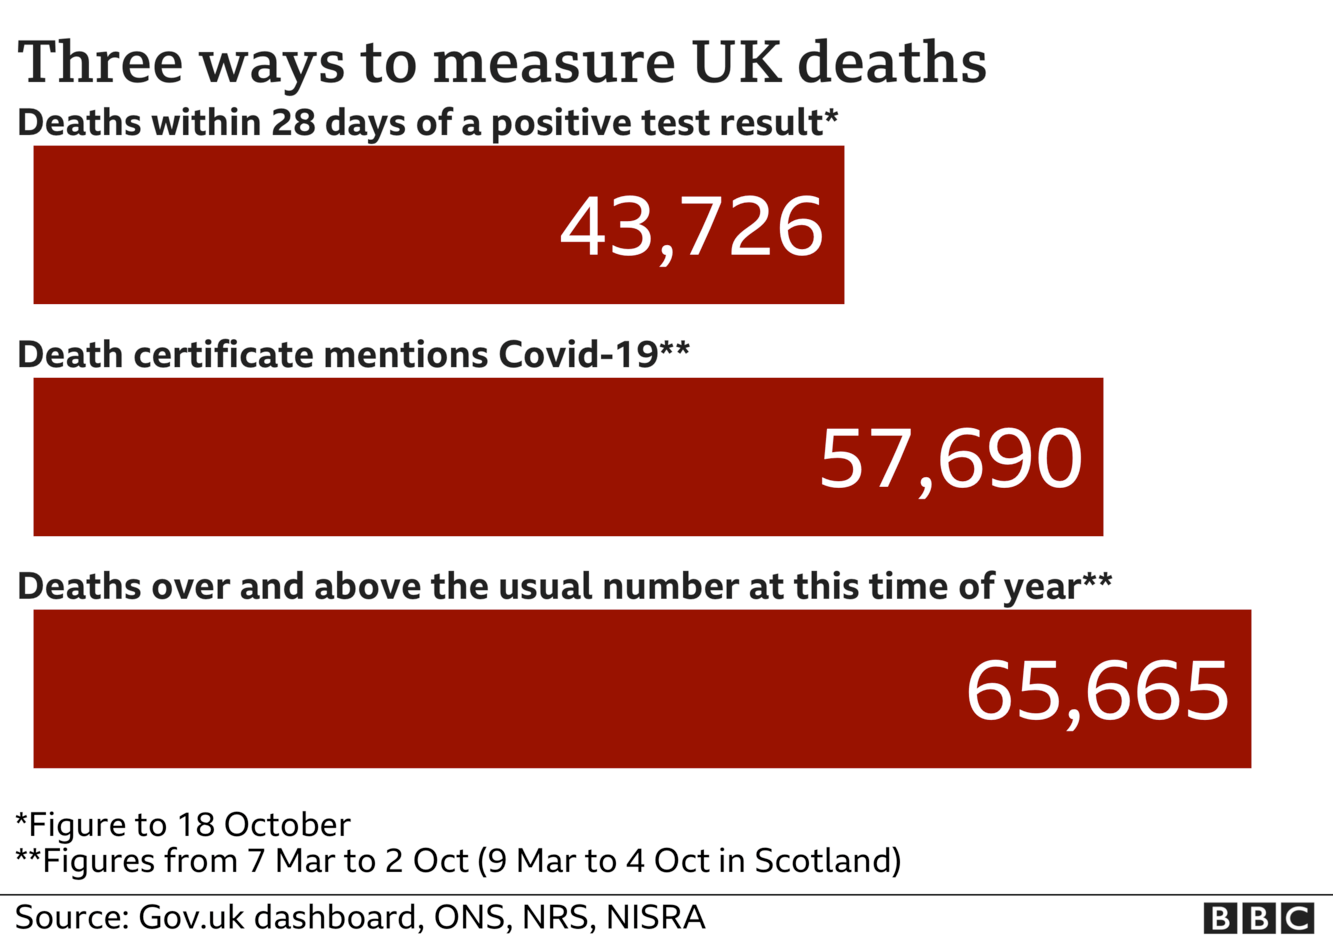 Chart showing the three different death totals, 43,726 according to government statistics, 57,690 include all deaths where coronavirus was mentioned on death certificates and 65,665 includes all excess deaths over and above the normal for the time of year